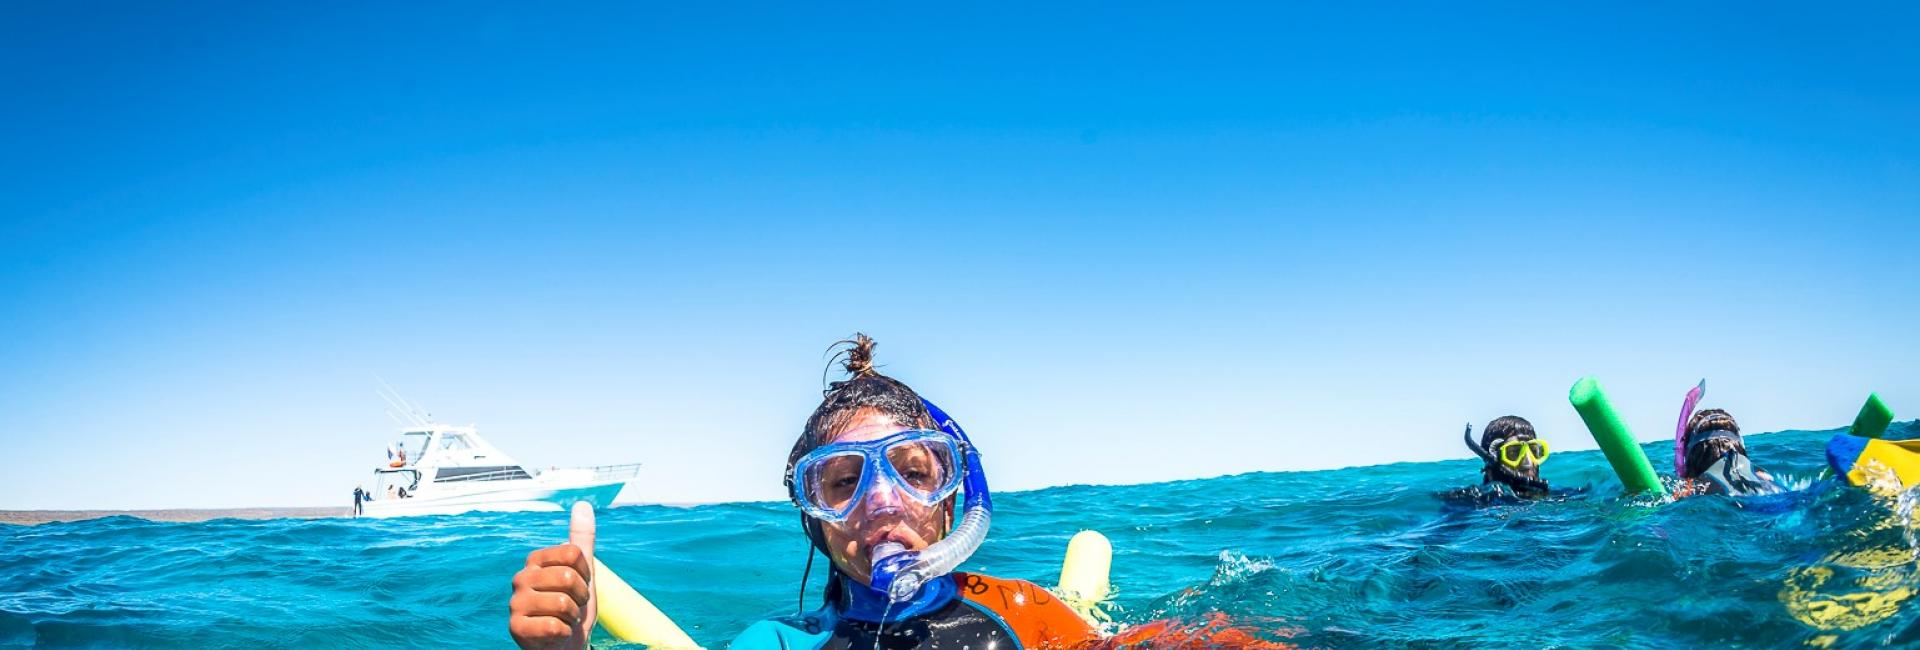 Ningaloo Discovery child snorkel